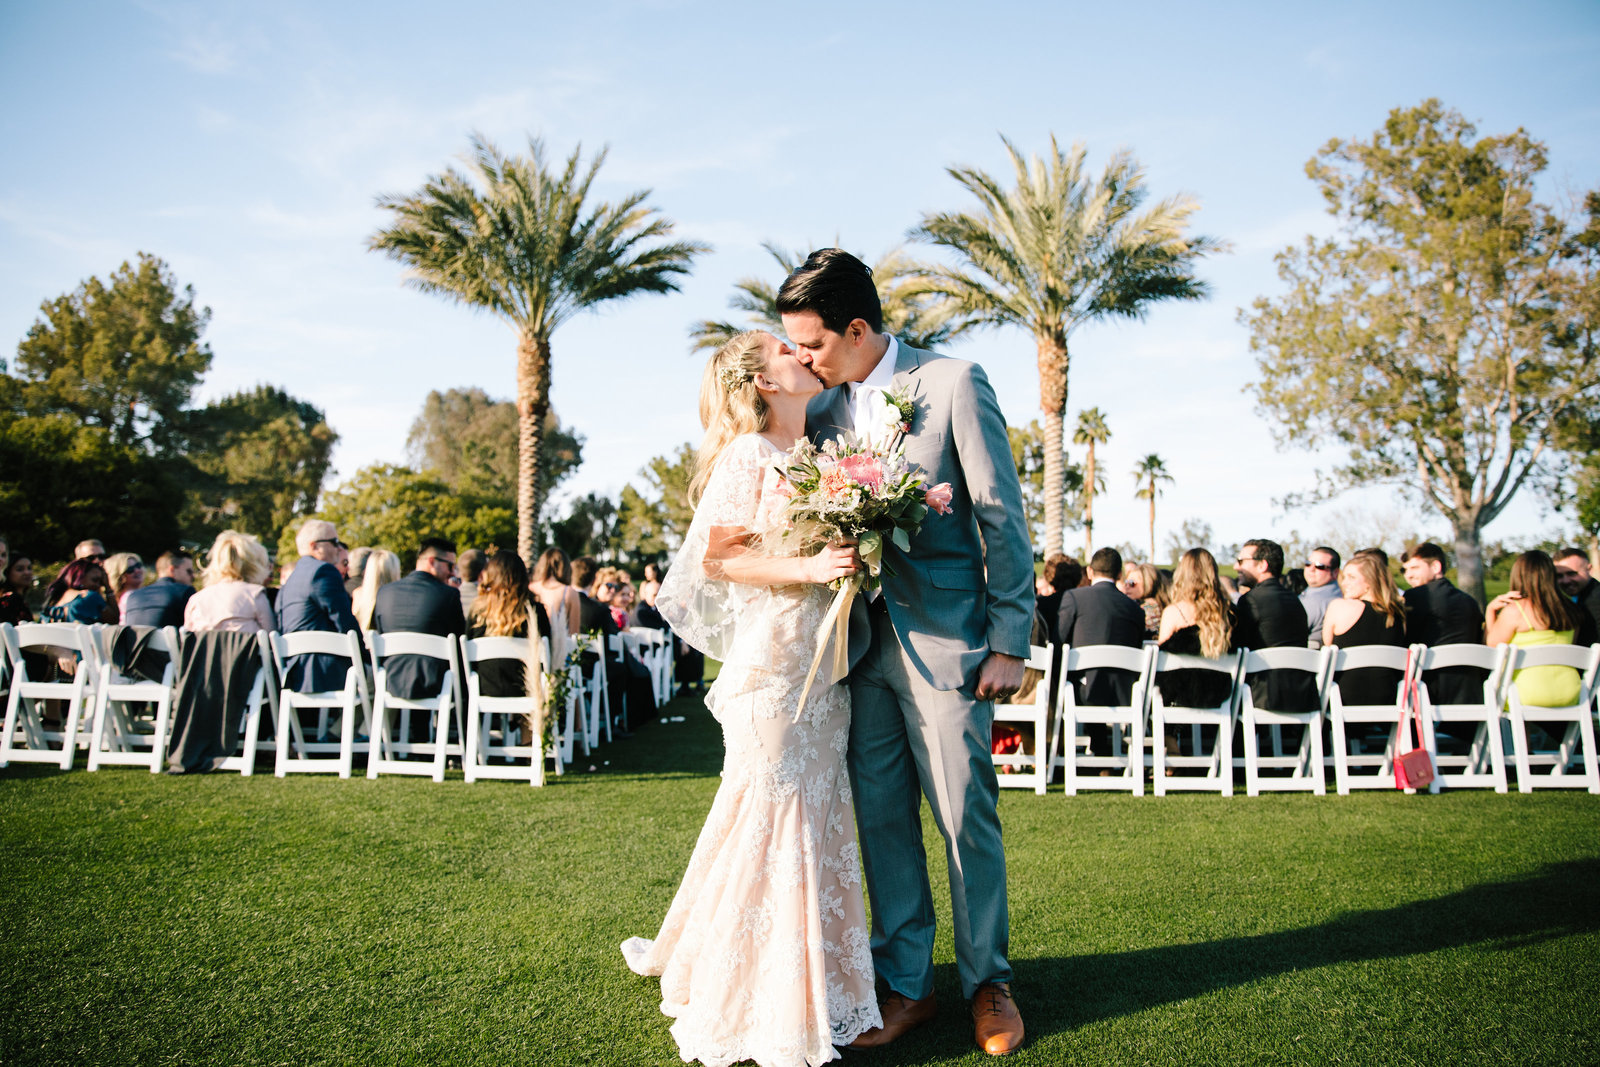 married in palm springs wedding ceremony